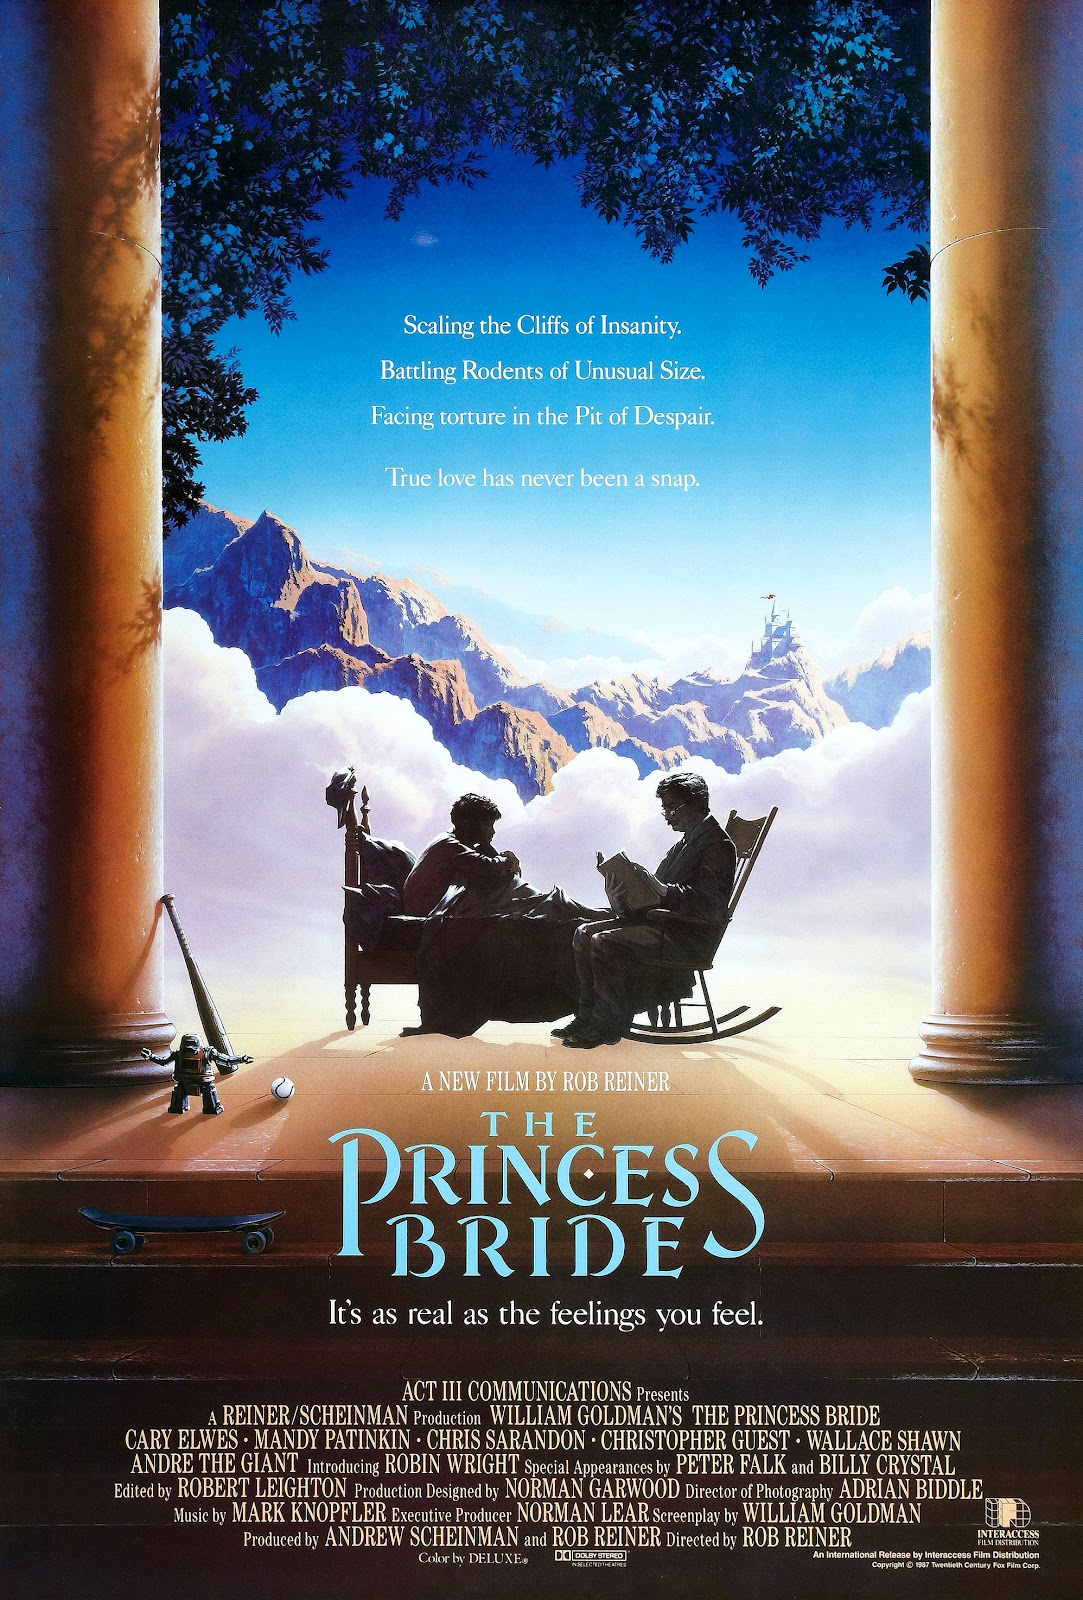 The Princess Bride (1988) - Directed by: Rob ReinerStarring: Robin Wright, Mandy Patinkin, Cary Elwes, Andre The Giant, Wallace Shawn, Christopher Guest, Chris Sarandon, Fred Savage, Peter Falk, Billy CrystalRated: PGRunning Time: 1 h 38 mTMM Score: 5 stars out of 5STRENGTHS: Pretty Much EverythingWEAKNESSES: -